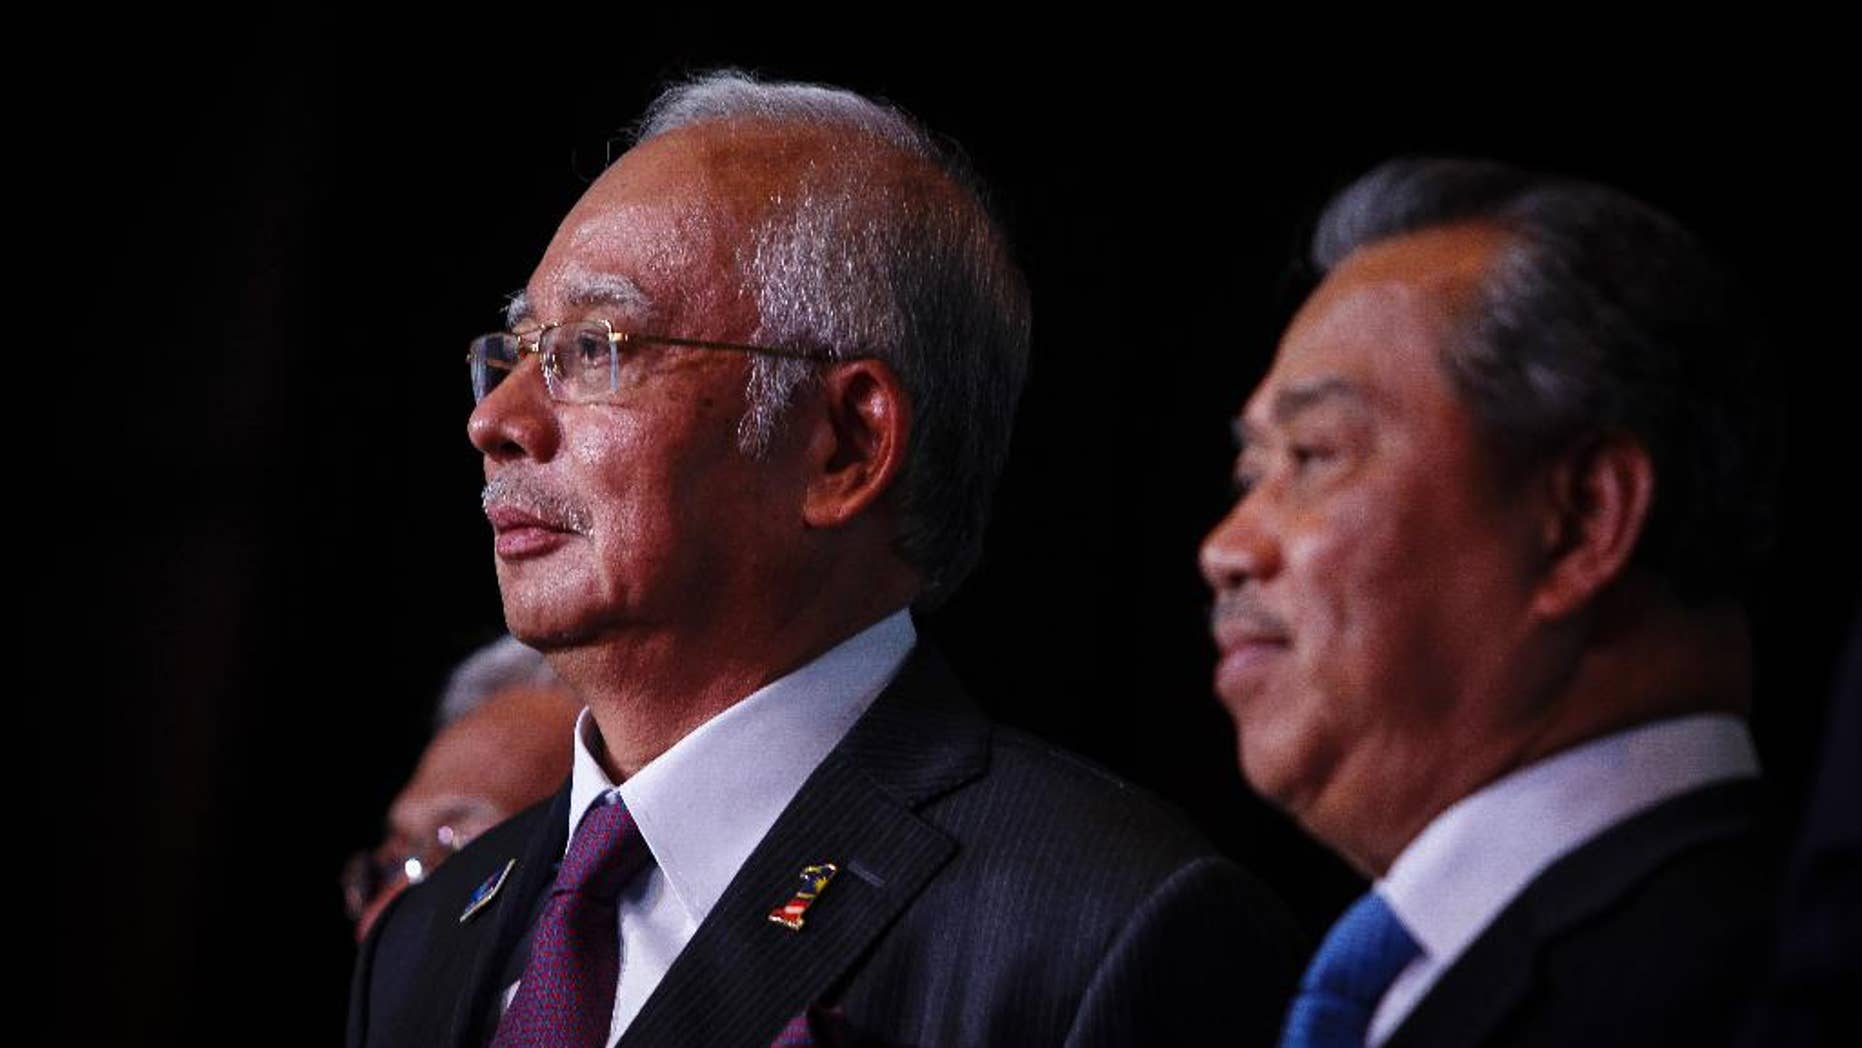 In this April 7, 2015 photo, Malaysian Prime Minister Najib Razak, left, and Deputy Prime Minister Muhyiddin Yassin attends the launch of the Malaysian Education Blue Print at a hotel in Kuala Lumpur, Malaysia. In an interview Thursday April 9, 2015, Najib pledged there will be no cover-up in the investigation of a debt-laden state investment fund and reiterated he is not involved in the murder of a Mongolian woman nine years ago. (AP Photo/Joshua Paul)